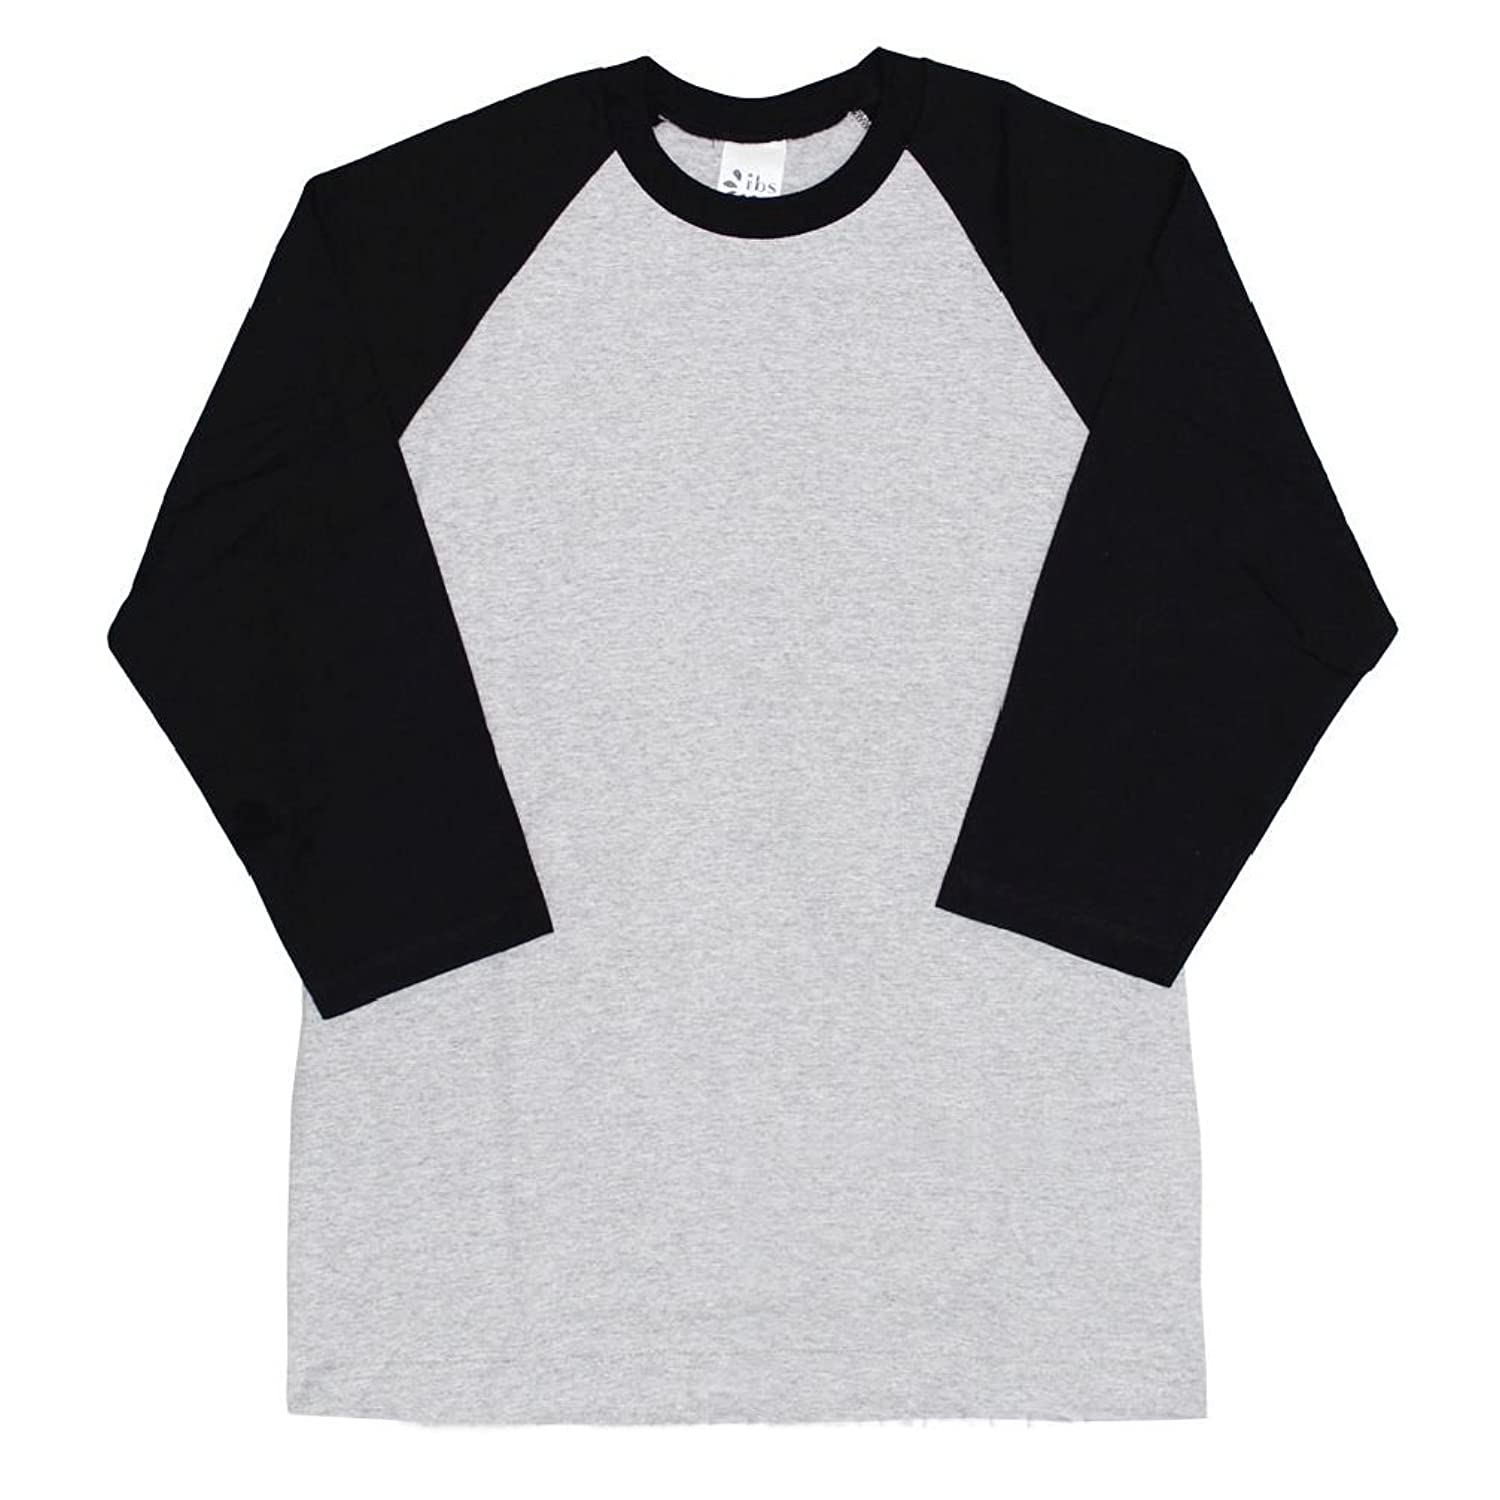 cheap for discount 1b325 0cfbe low-cost 3 4 Sleeve Plain T-Shirt Baseball Tee Raglan Jersey Sports